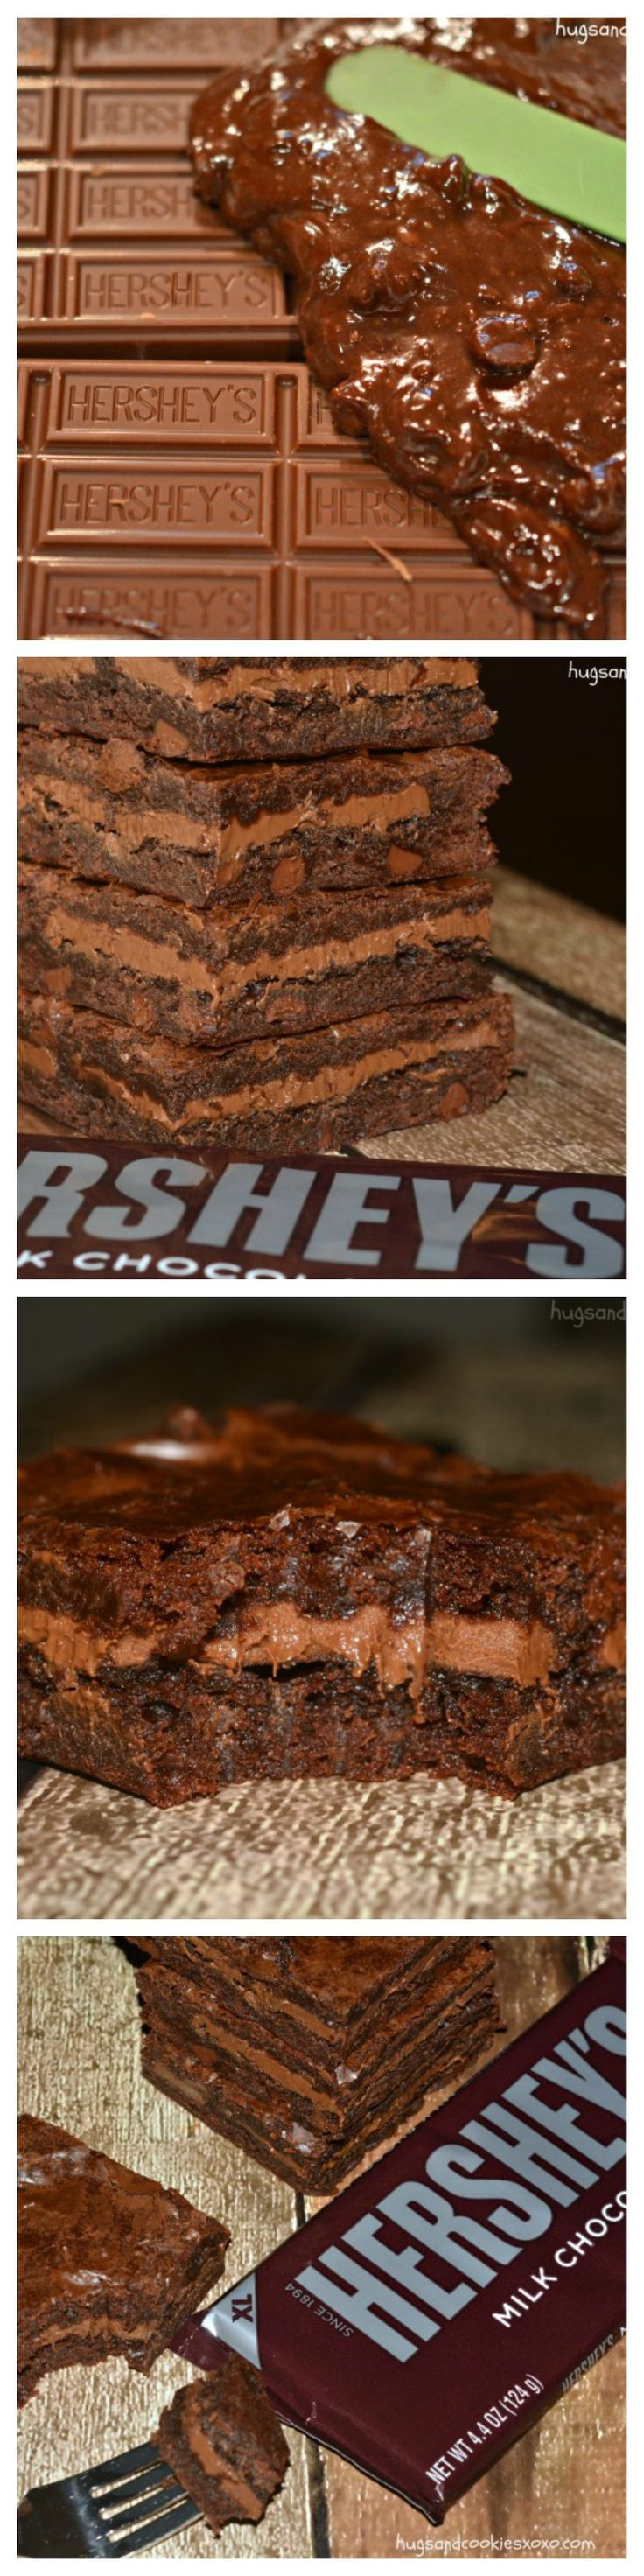 hershey stuffed brownie